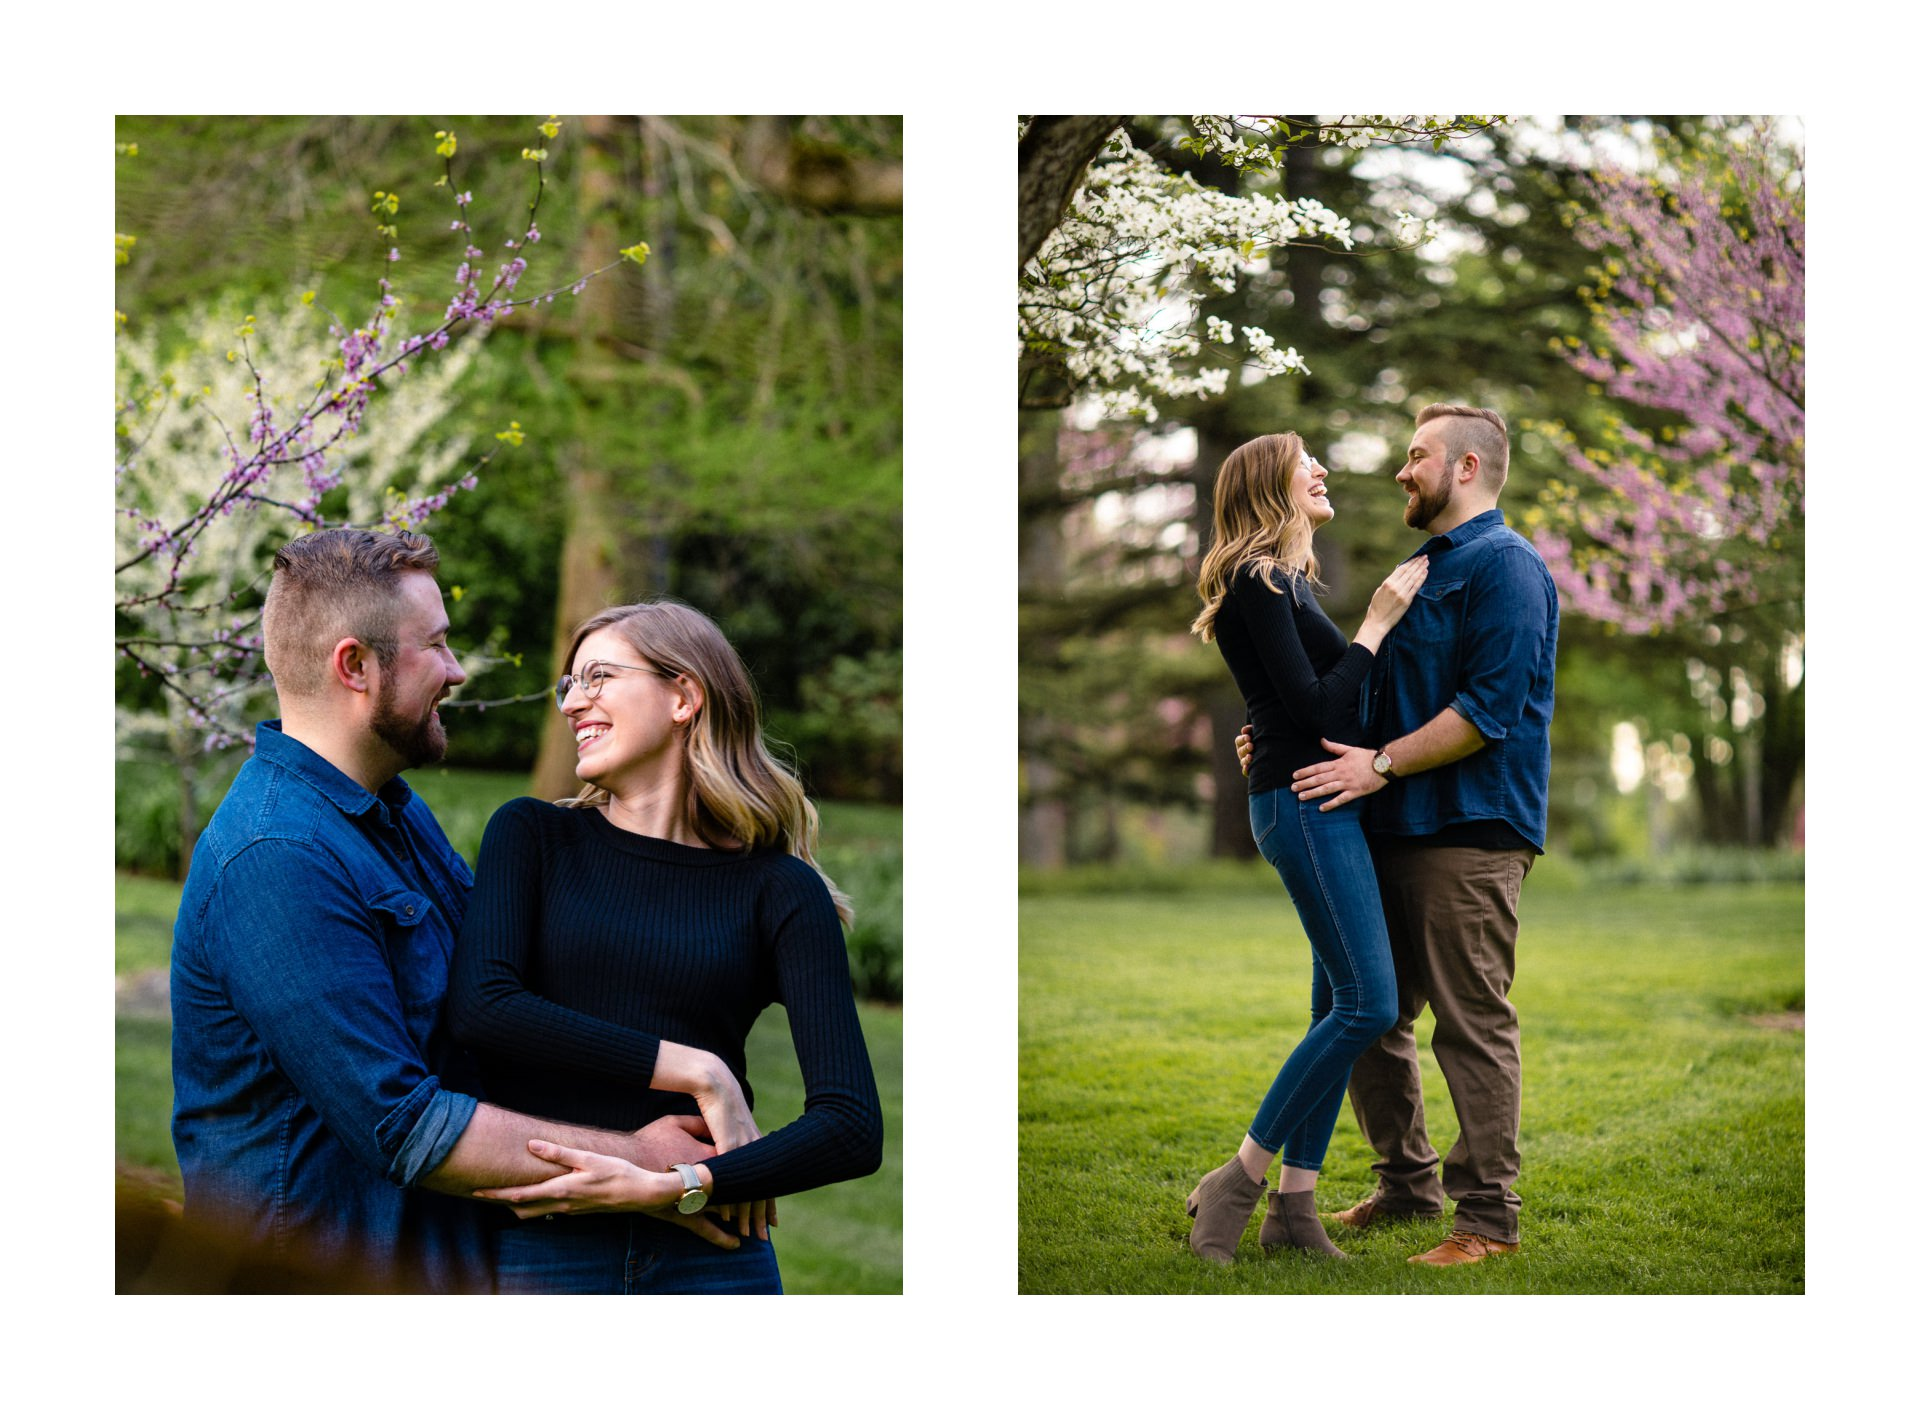 Spring Cleveland Botanical Gardens Engagement Photos 3.jpg